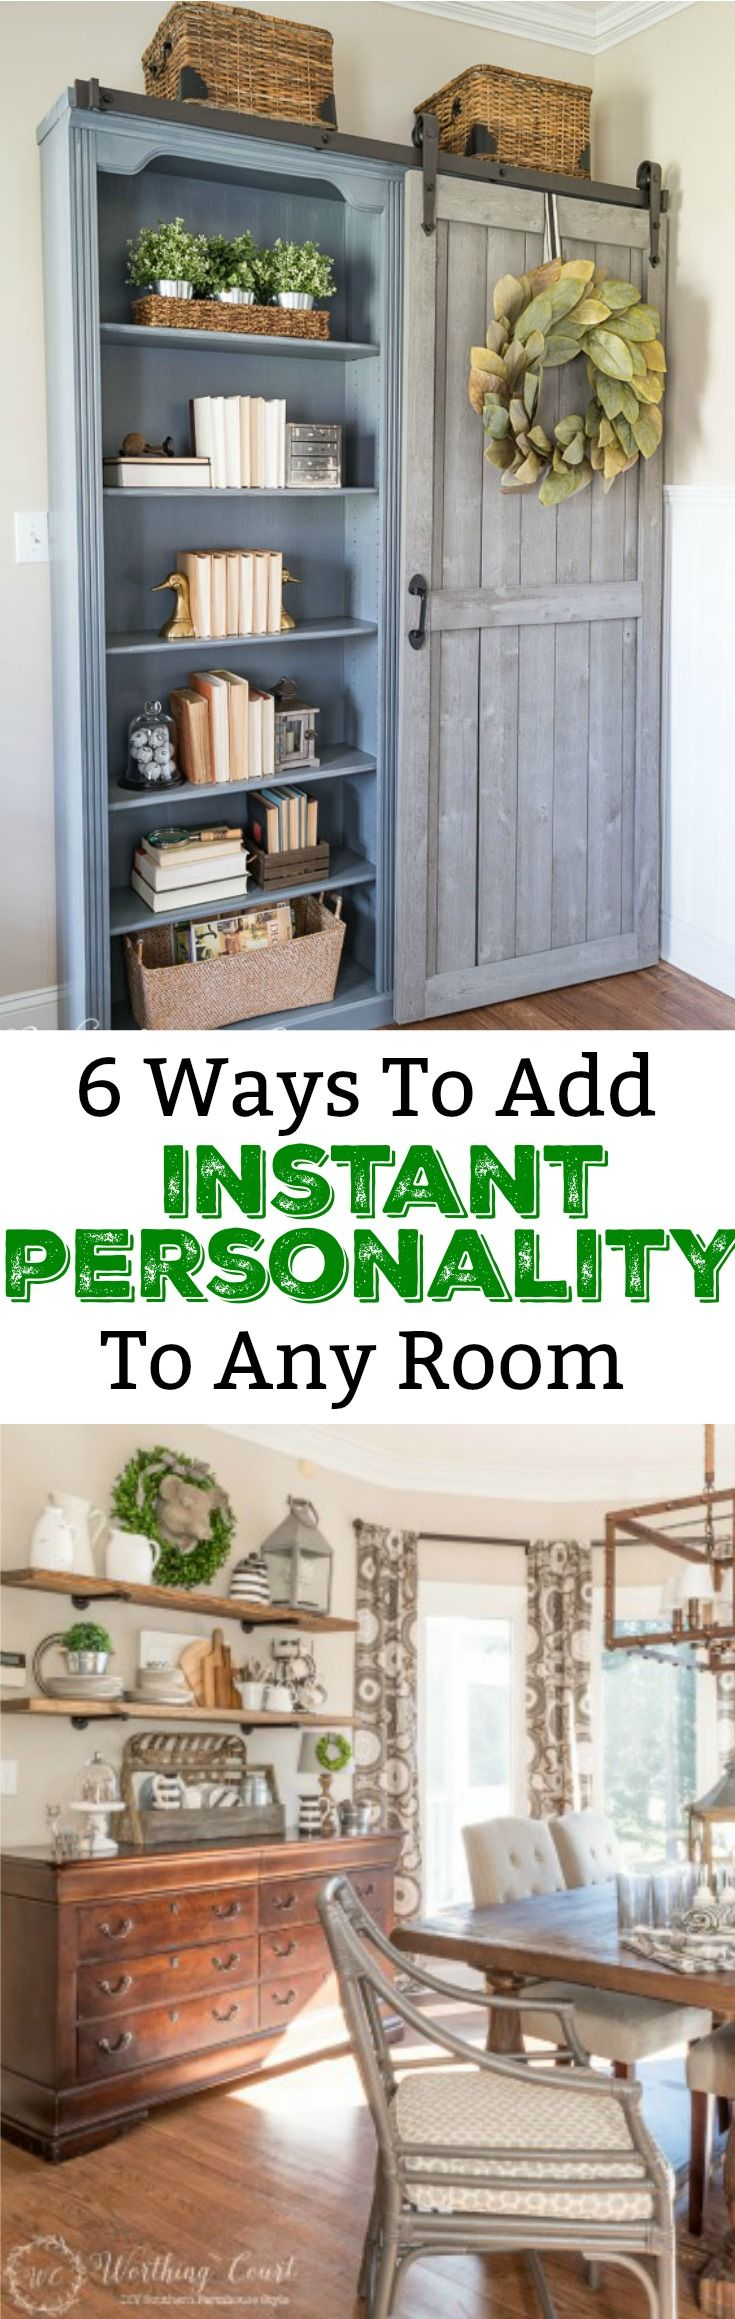 How to decorate a room with personality, easy diy projects, farmhouse